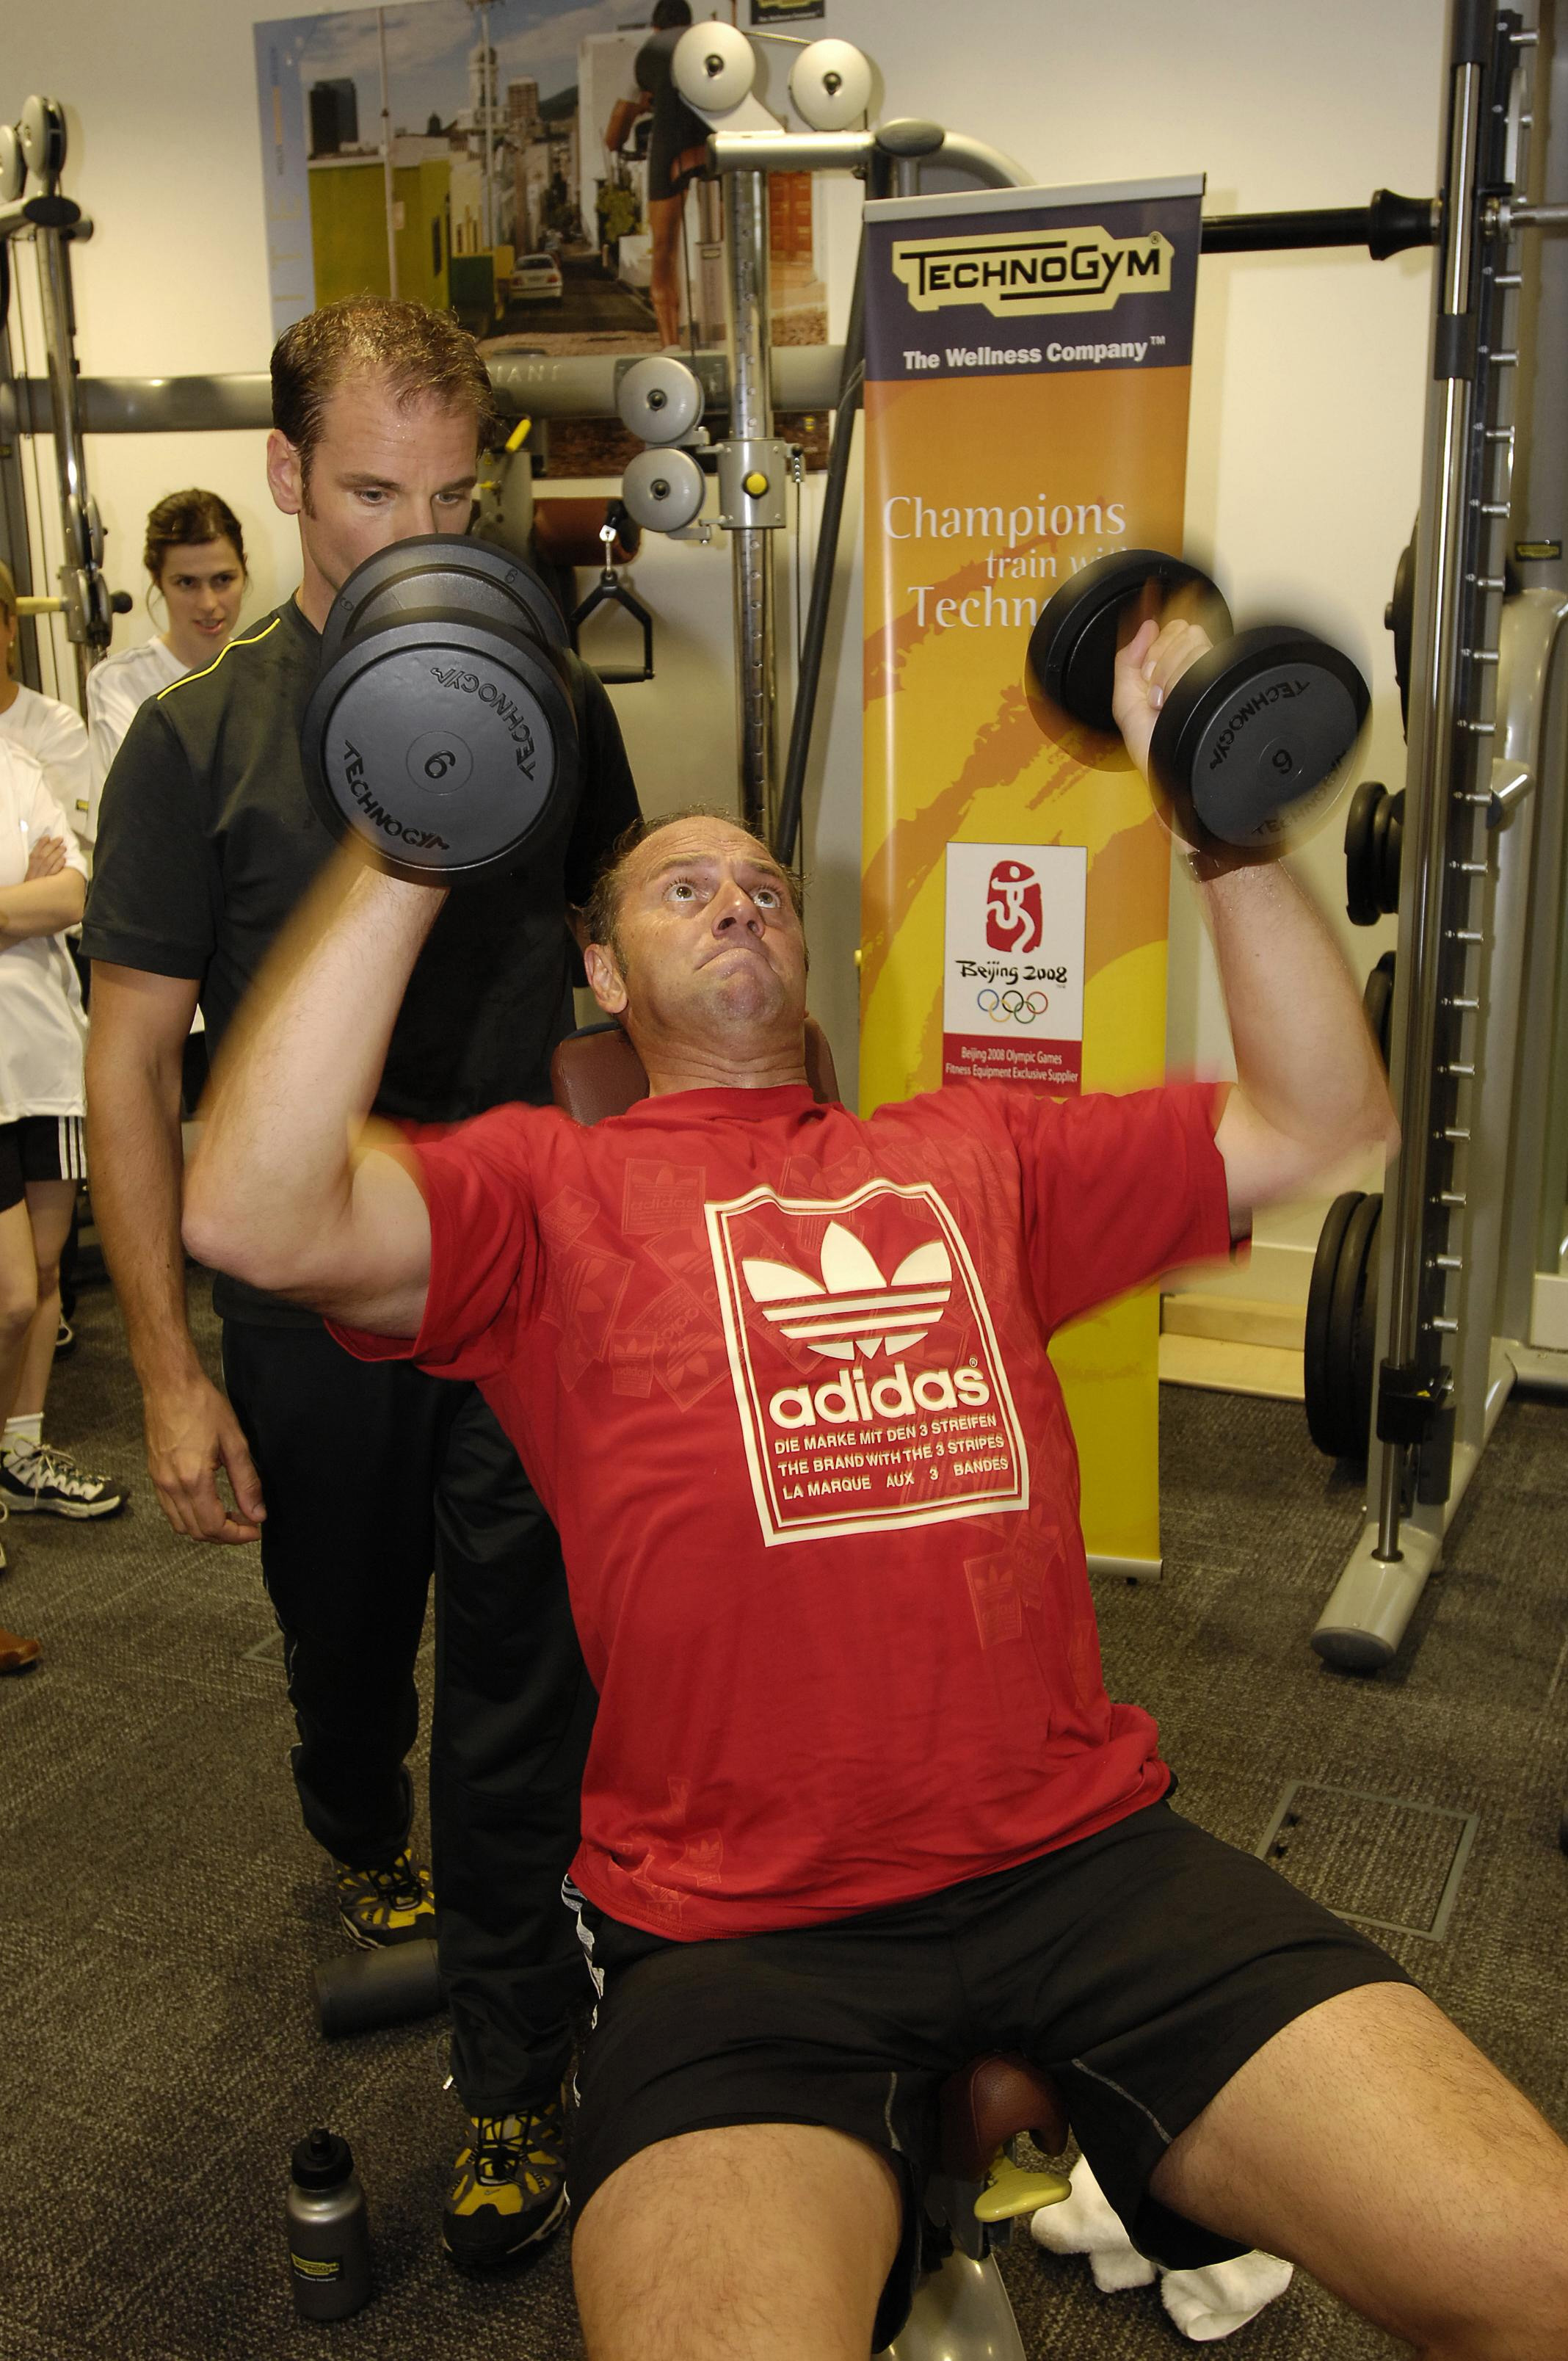 Steve Regrave exercising using Technogym fitness equipment. (PA Photo/Handout)